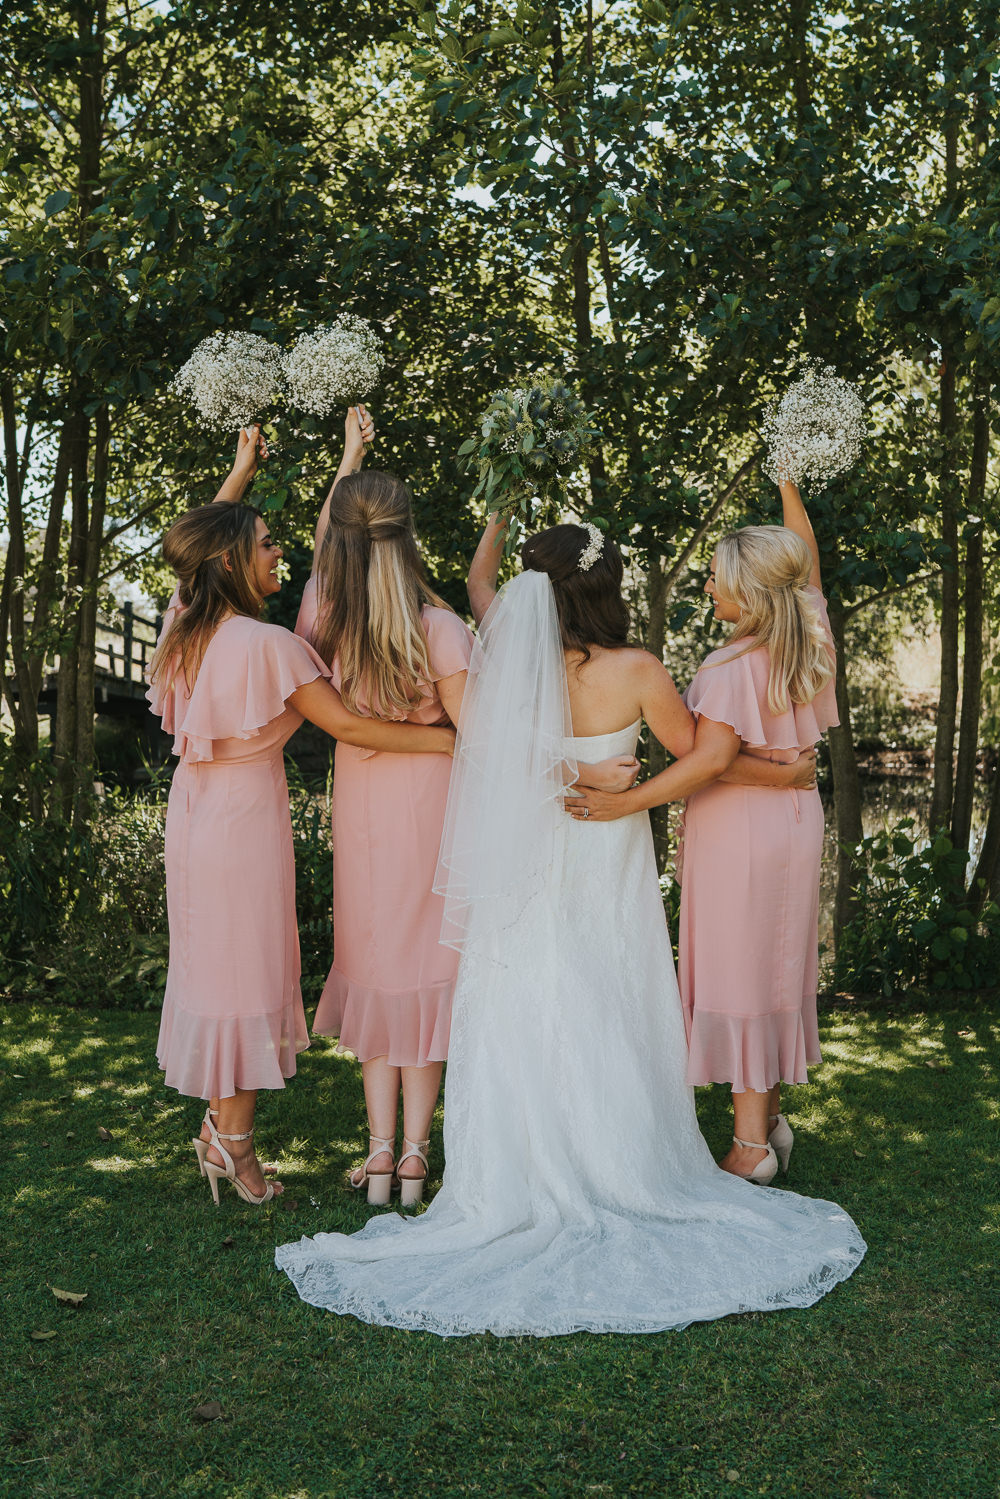 Outdoor Natural Relaxed Laid Back Summer Blush Pink Dresses Gypsophila Baby's Breath White Bouquet | Prested Hall Wedding Grace Elizabeth Photography